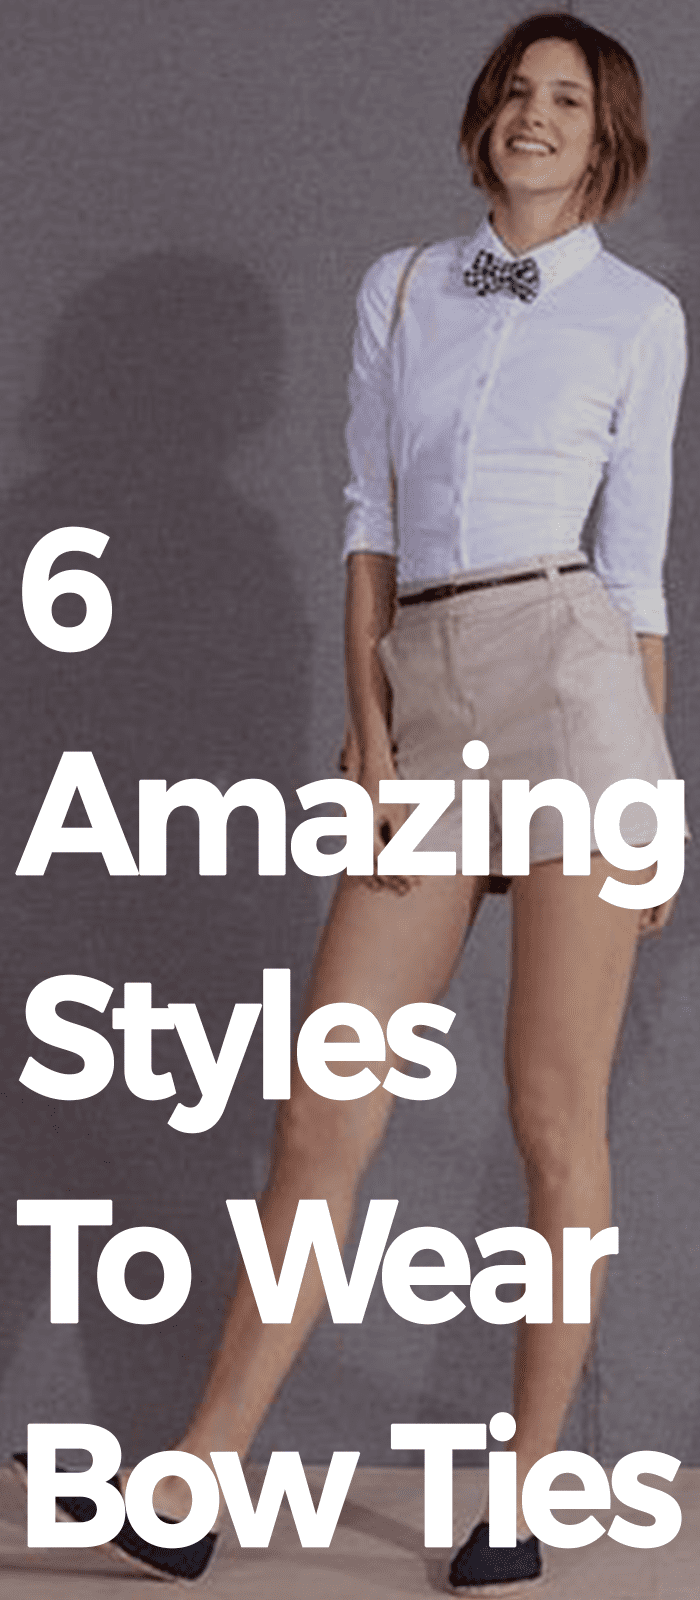 6 Amazing Styles To Wear Bow Ties!